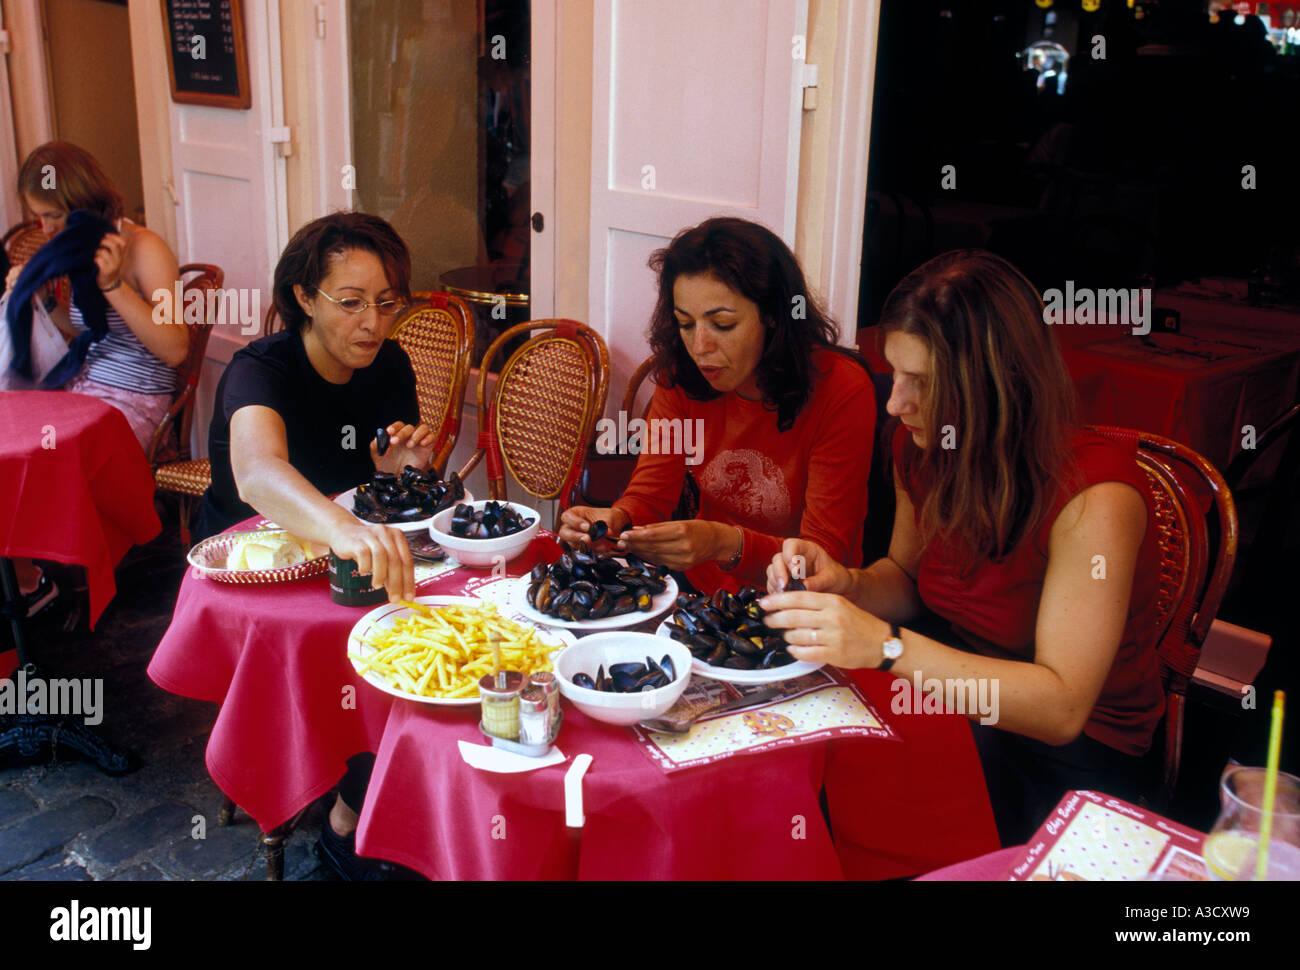 French People Women Eating Mussels At Restaurant In Place Du Tertre Montmartre District Paris Ile De France Region Europe